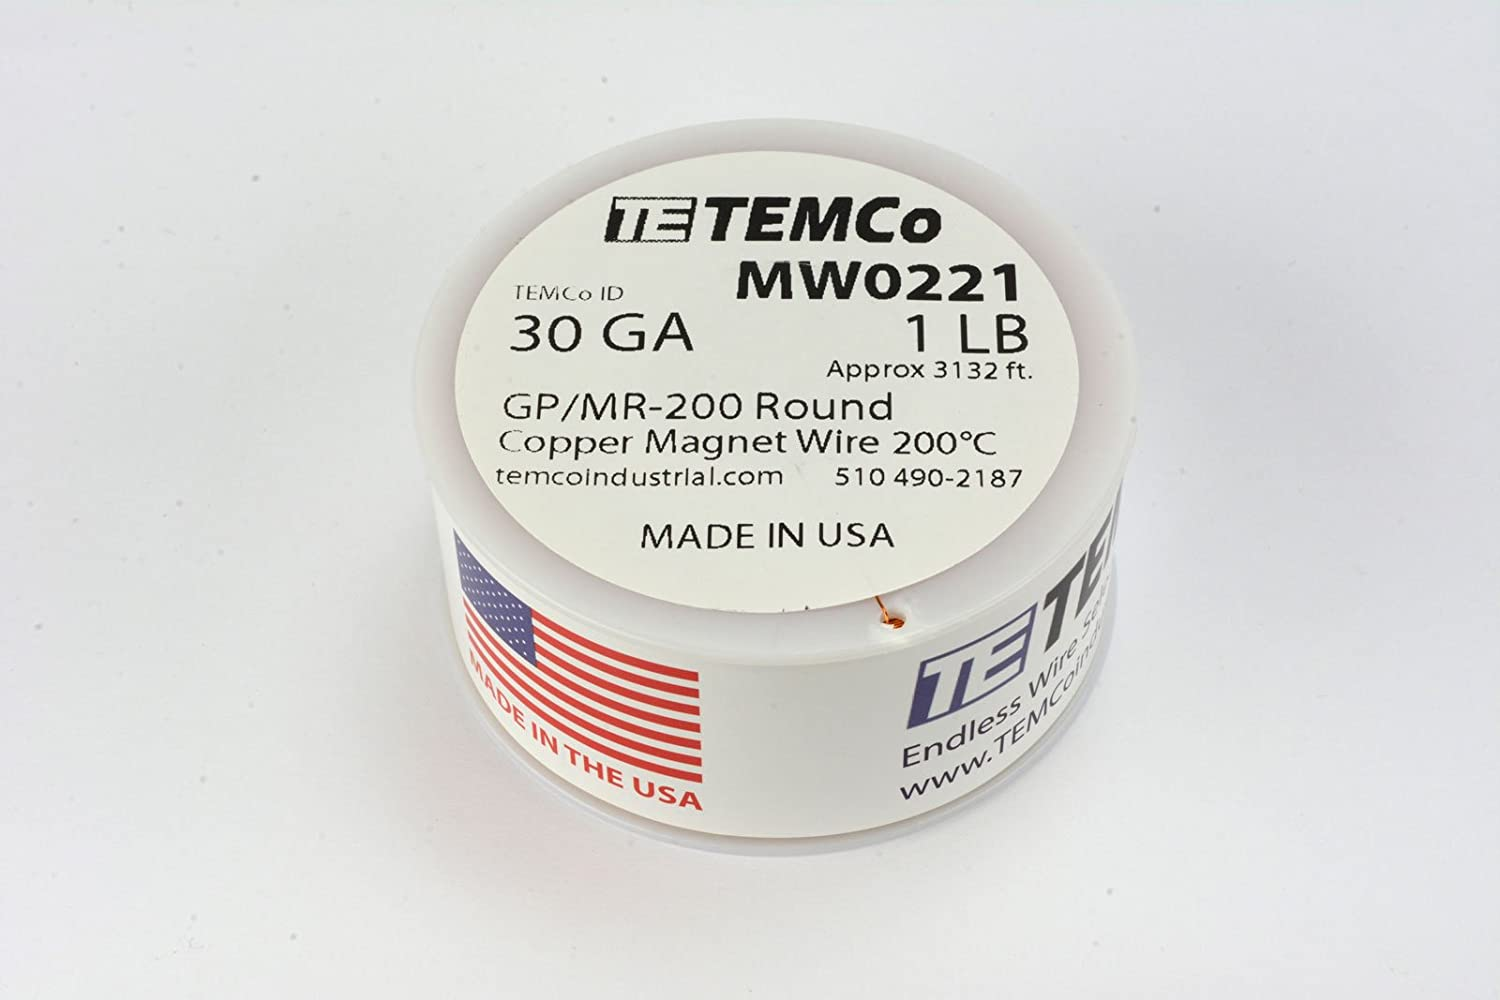 Amazon.com: TEMCo 30 AWG Copper Magnet Wire - 1 lb 3132 ft 200°C ...